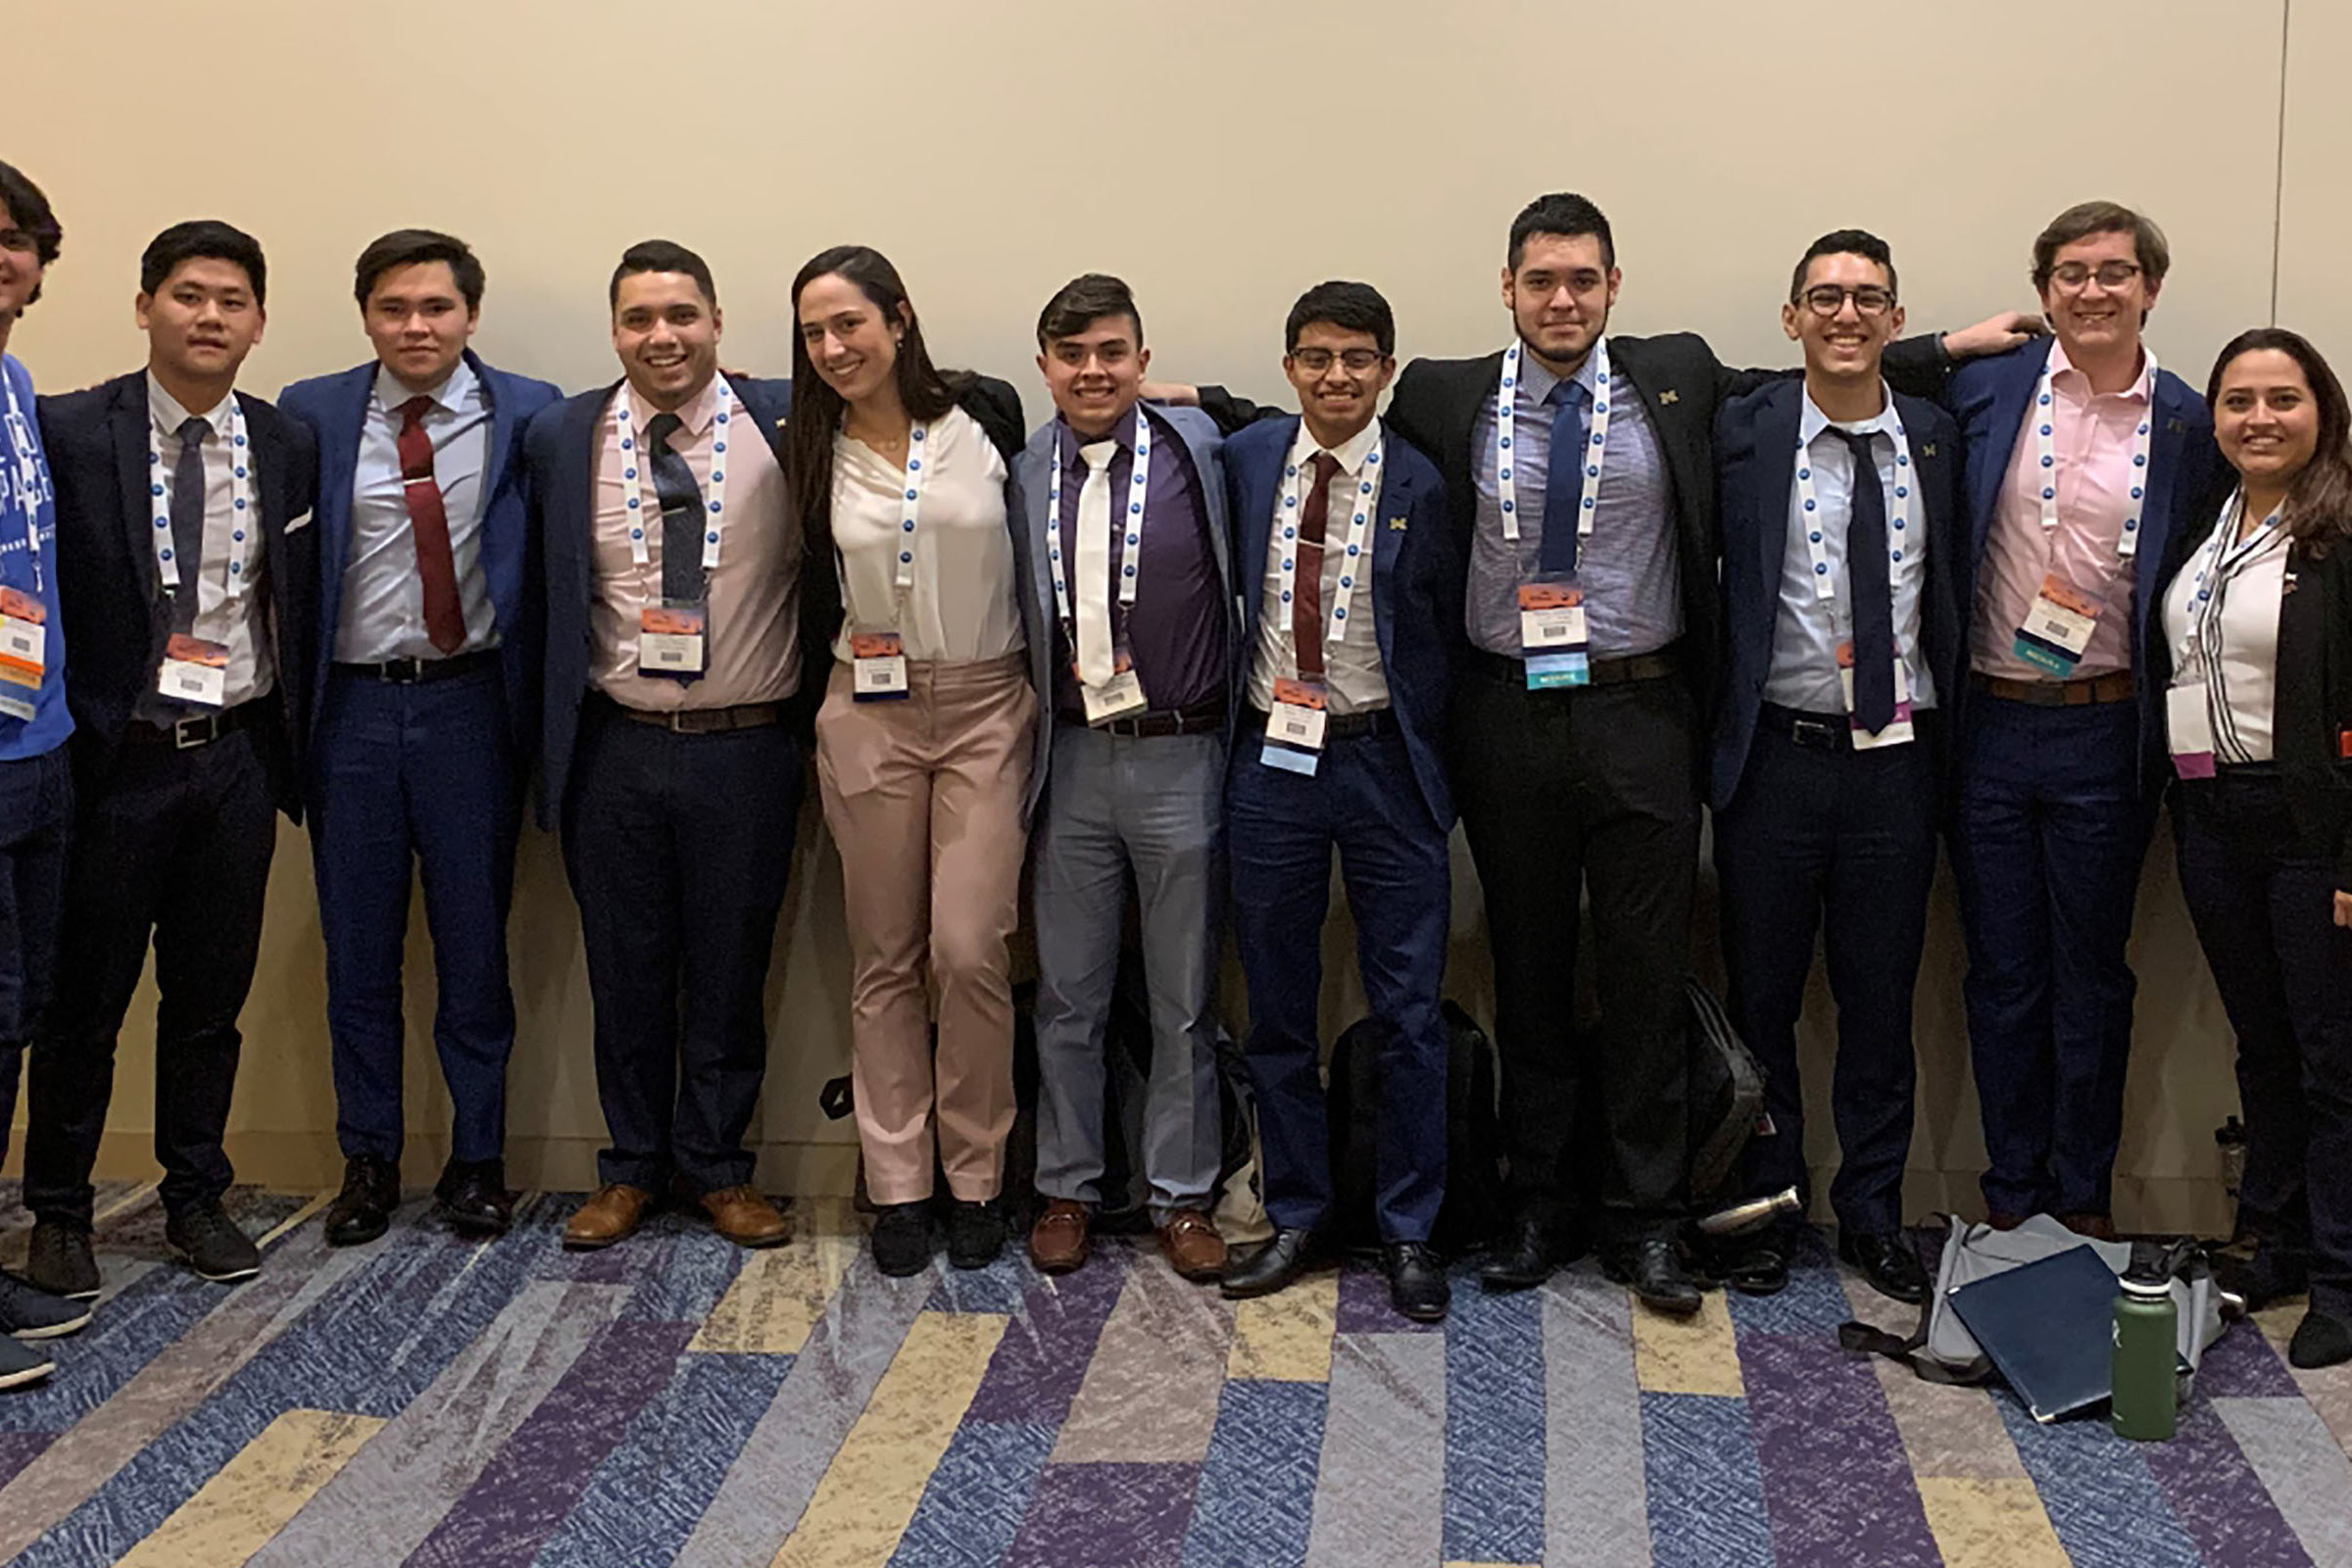 Society of Hispanic Professional Engineers makes connections, builds relationships at annual convention